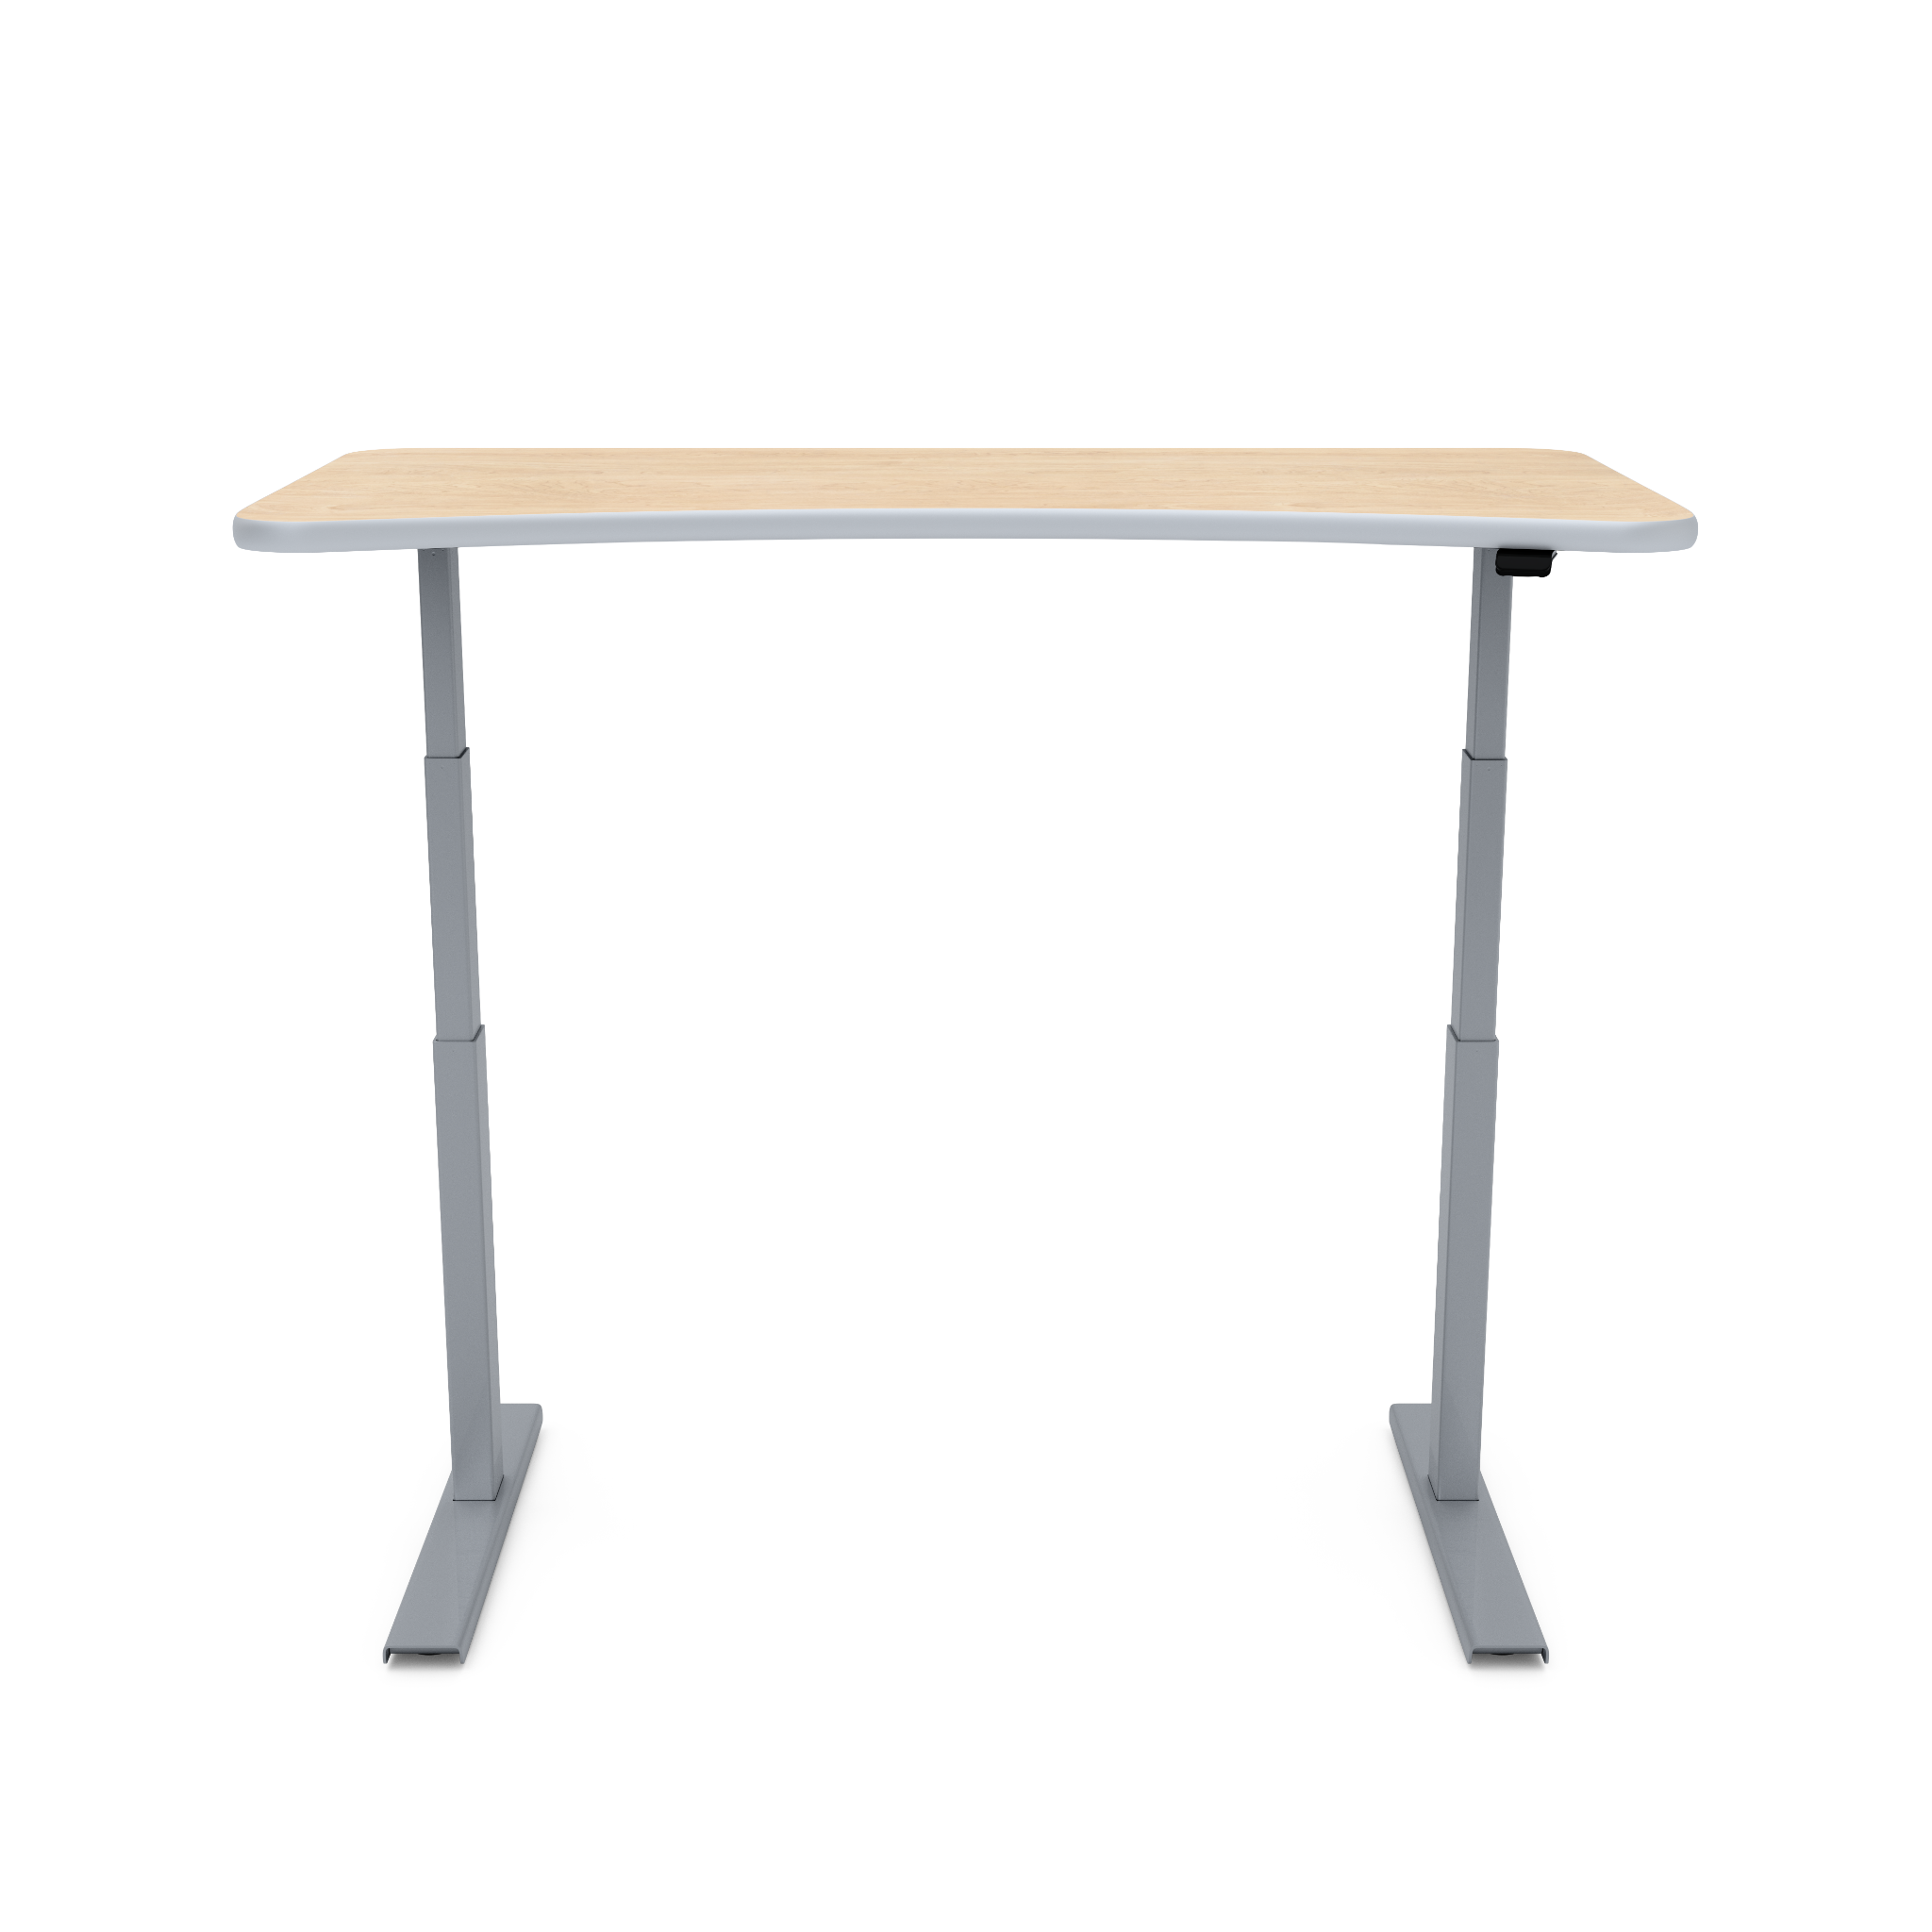 UPDESK Electric Lift Standing Desk - Standard Maple Top on Titanium Frame **CLOSEOUT**